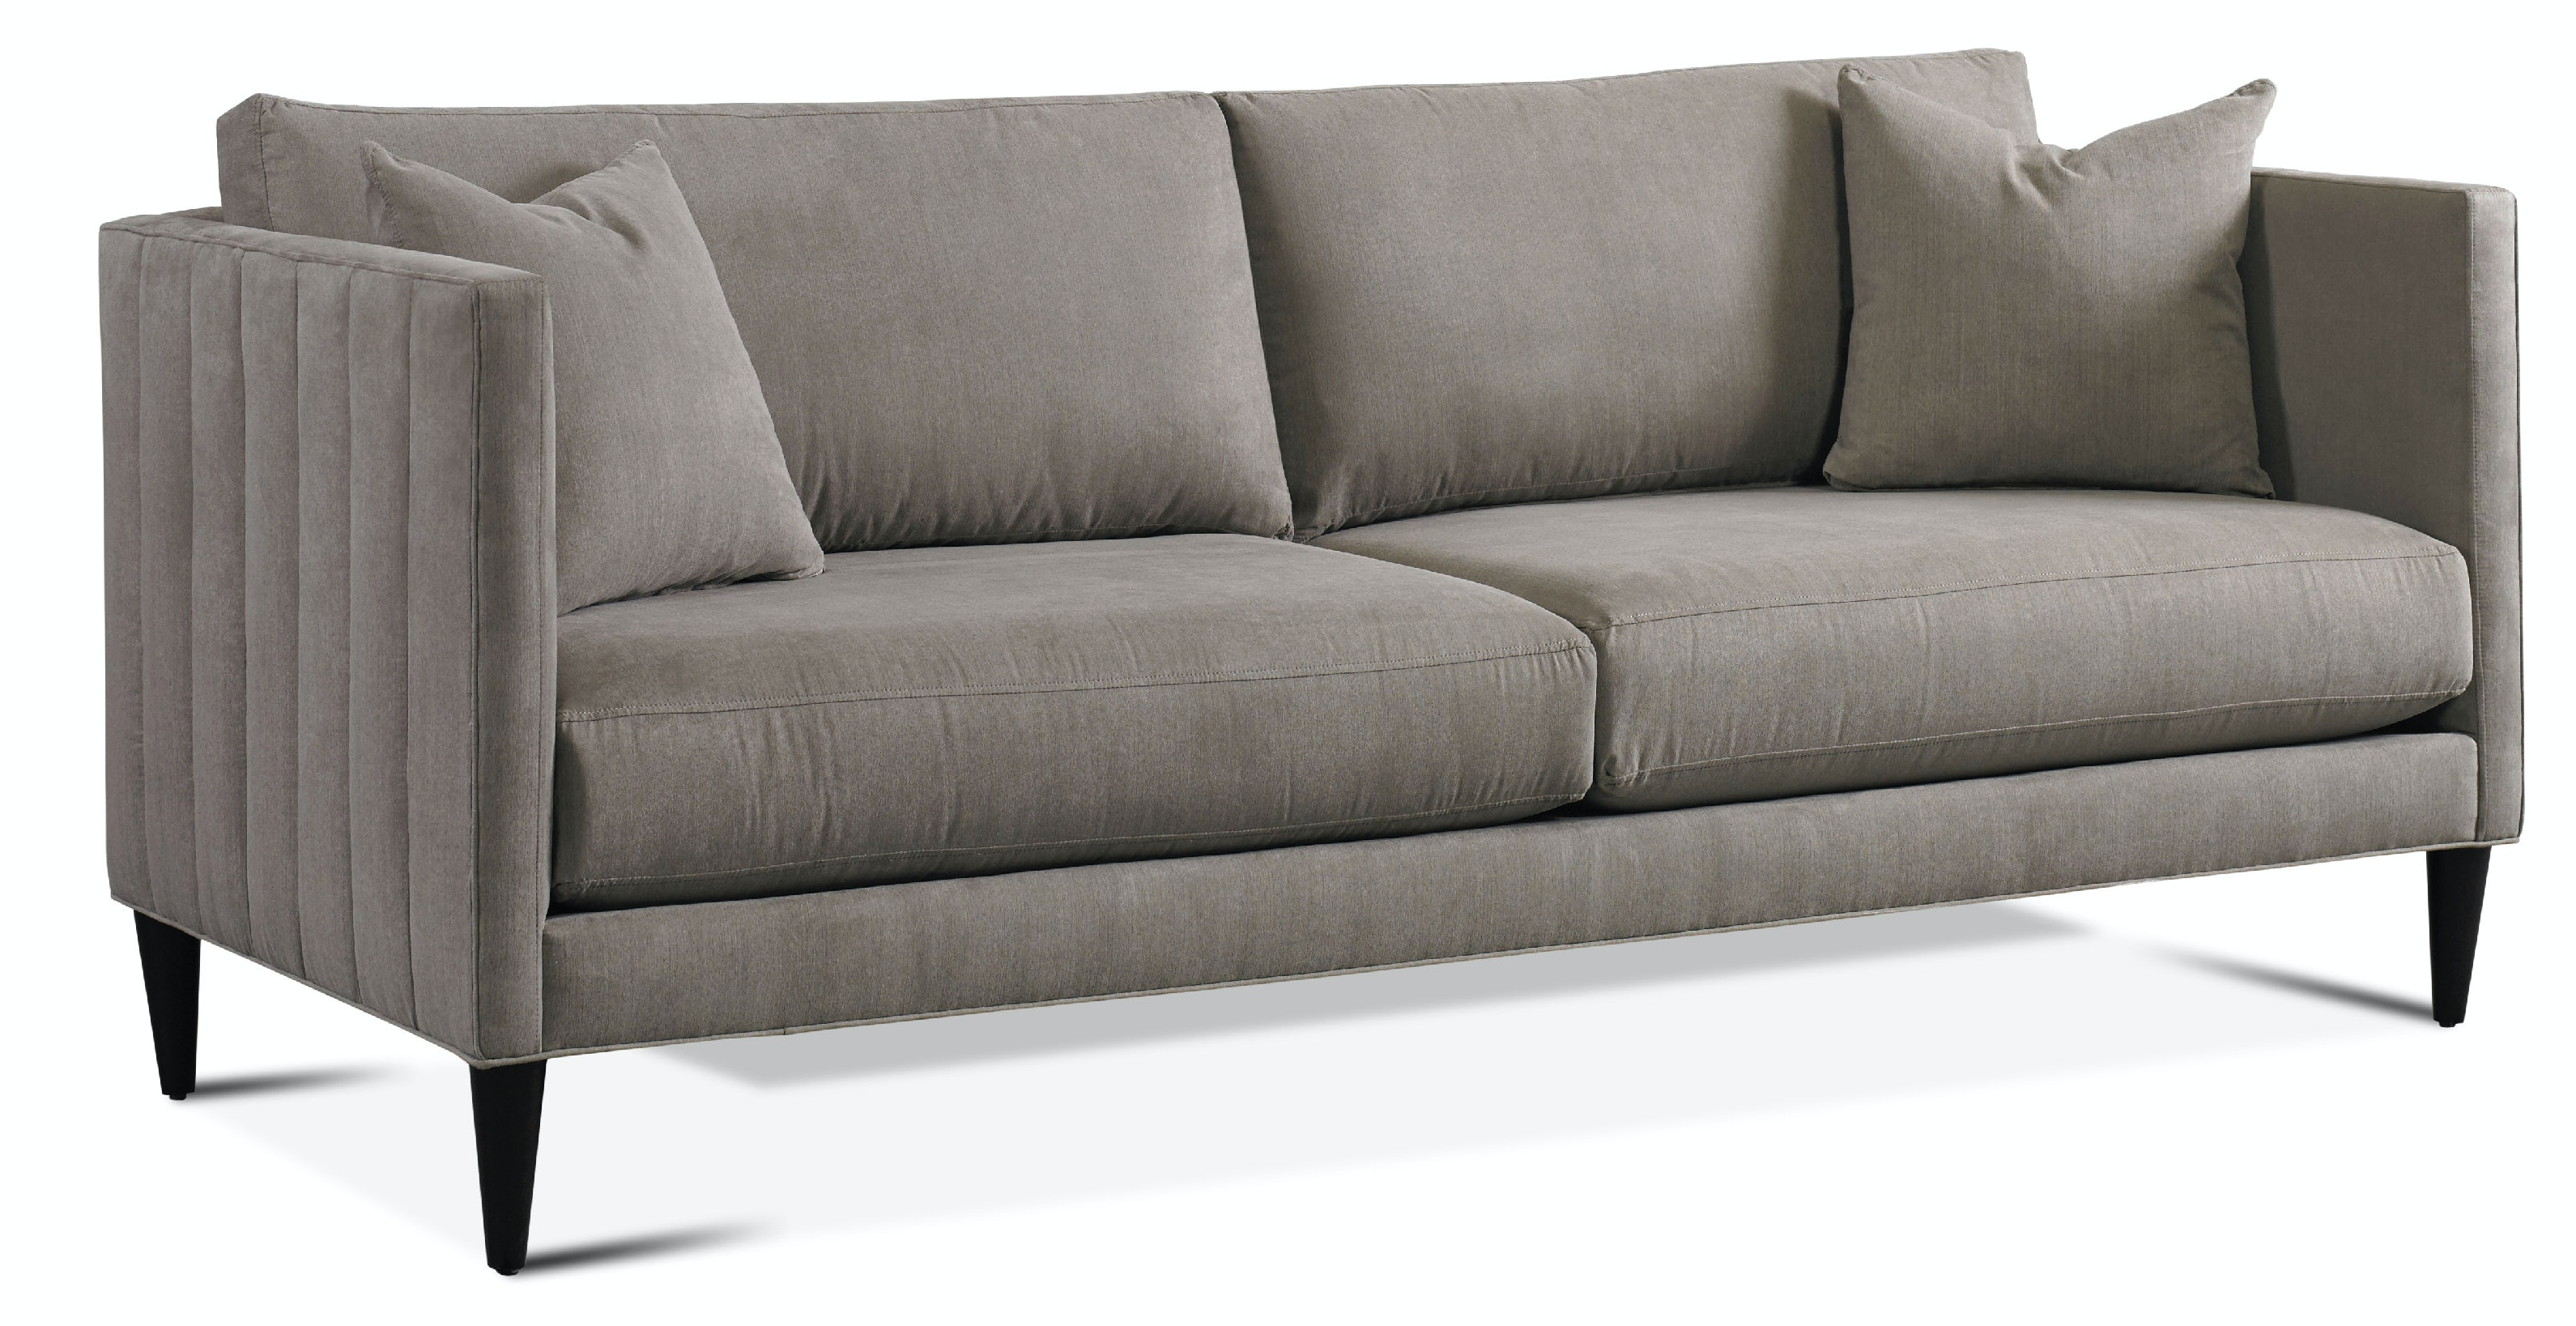 Amazing Paragon Furniture Michael Sofa YP3286S1 From Walter E. Smithe Furniture +  Design